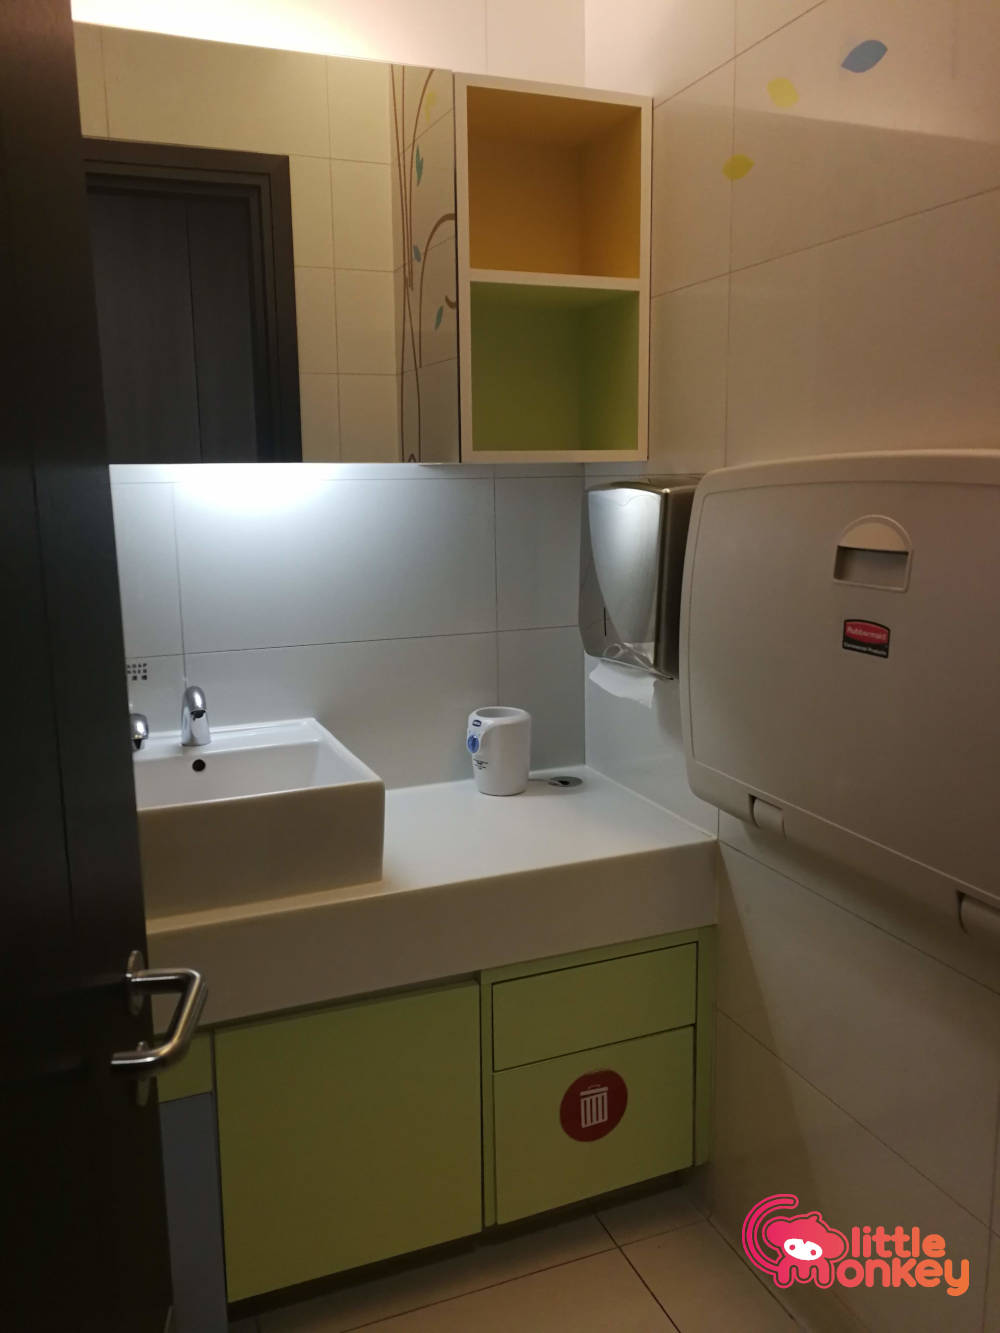 Nursery room's basin and changing station in iSquare